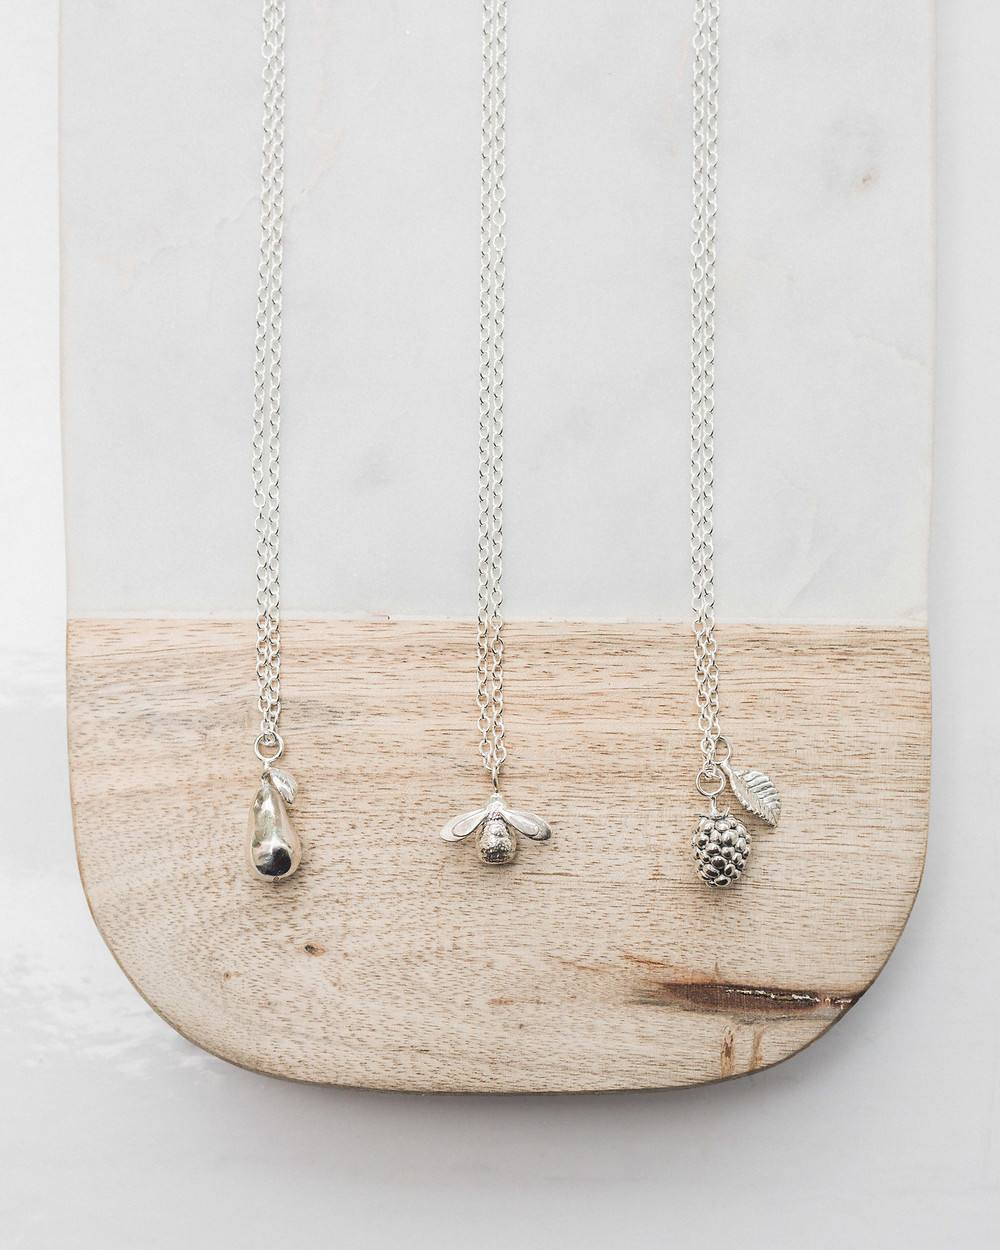 Three of Lucy Flint's favourite pendants. These would make great choices for wedding jewellery. Lucy Flints' silver bracelets could make an ideal choice for your bridesmaids. Image by Darley and Underwood Photography. Wedding photography across the UK.